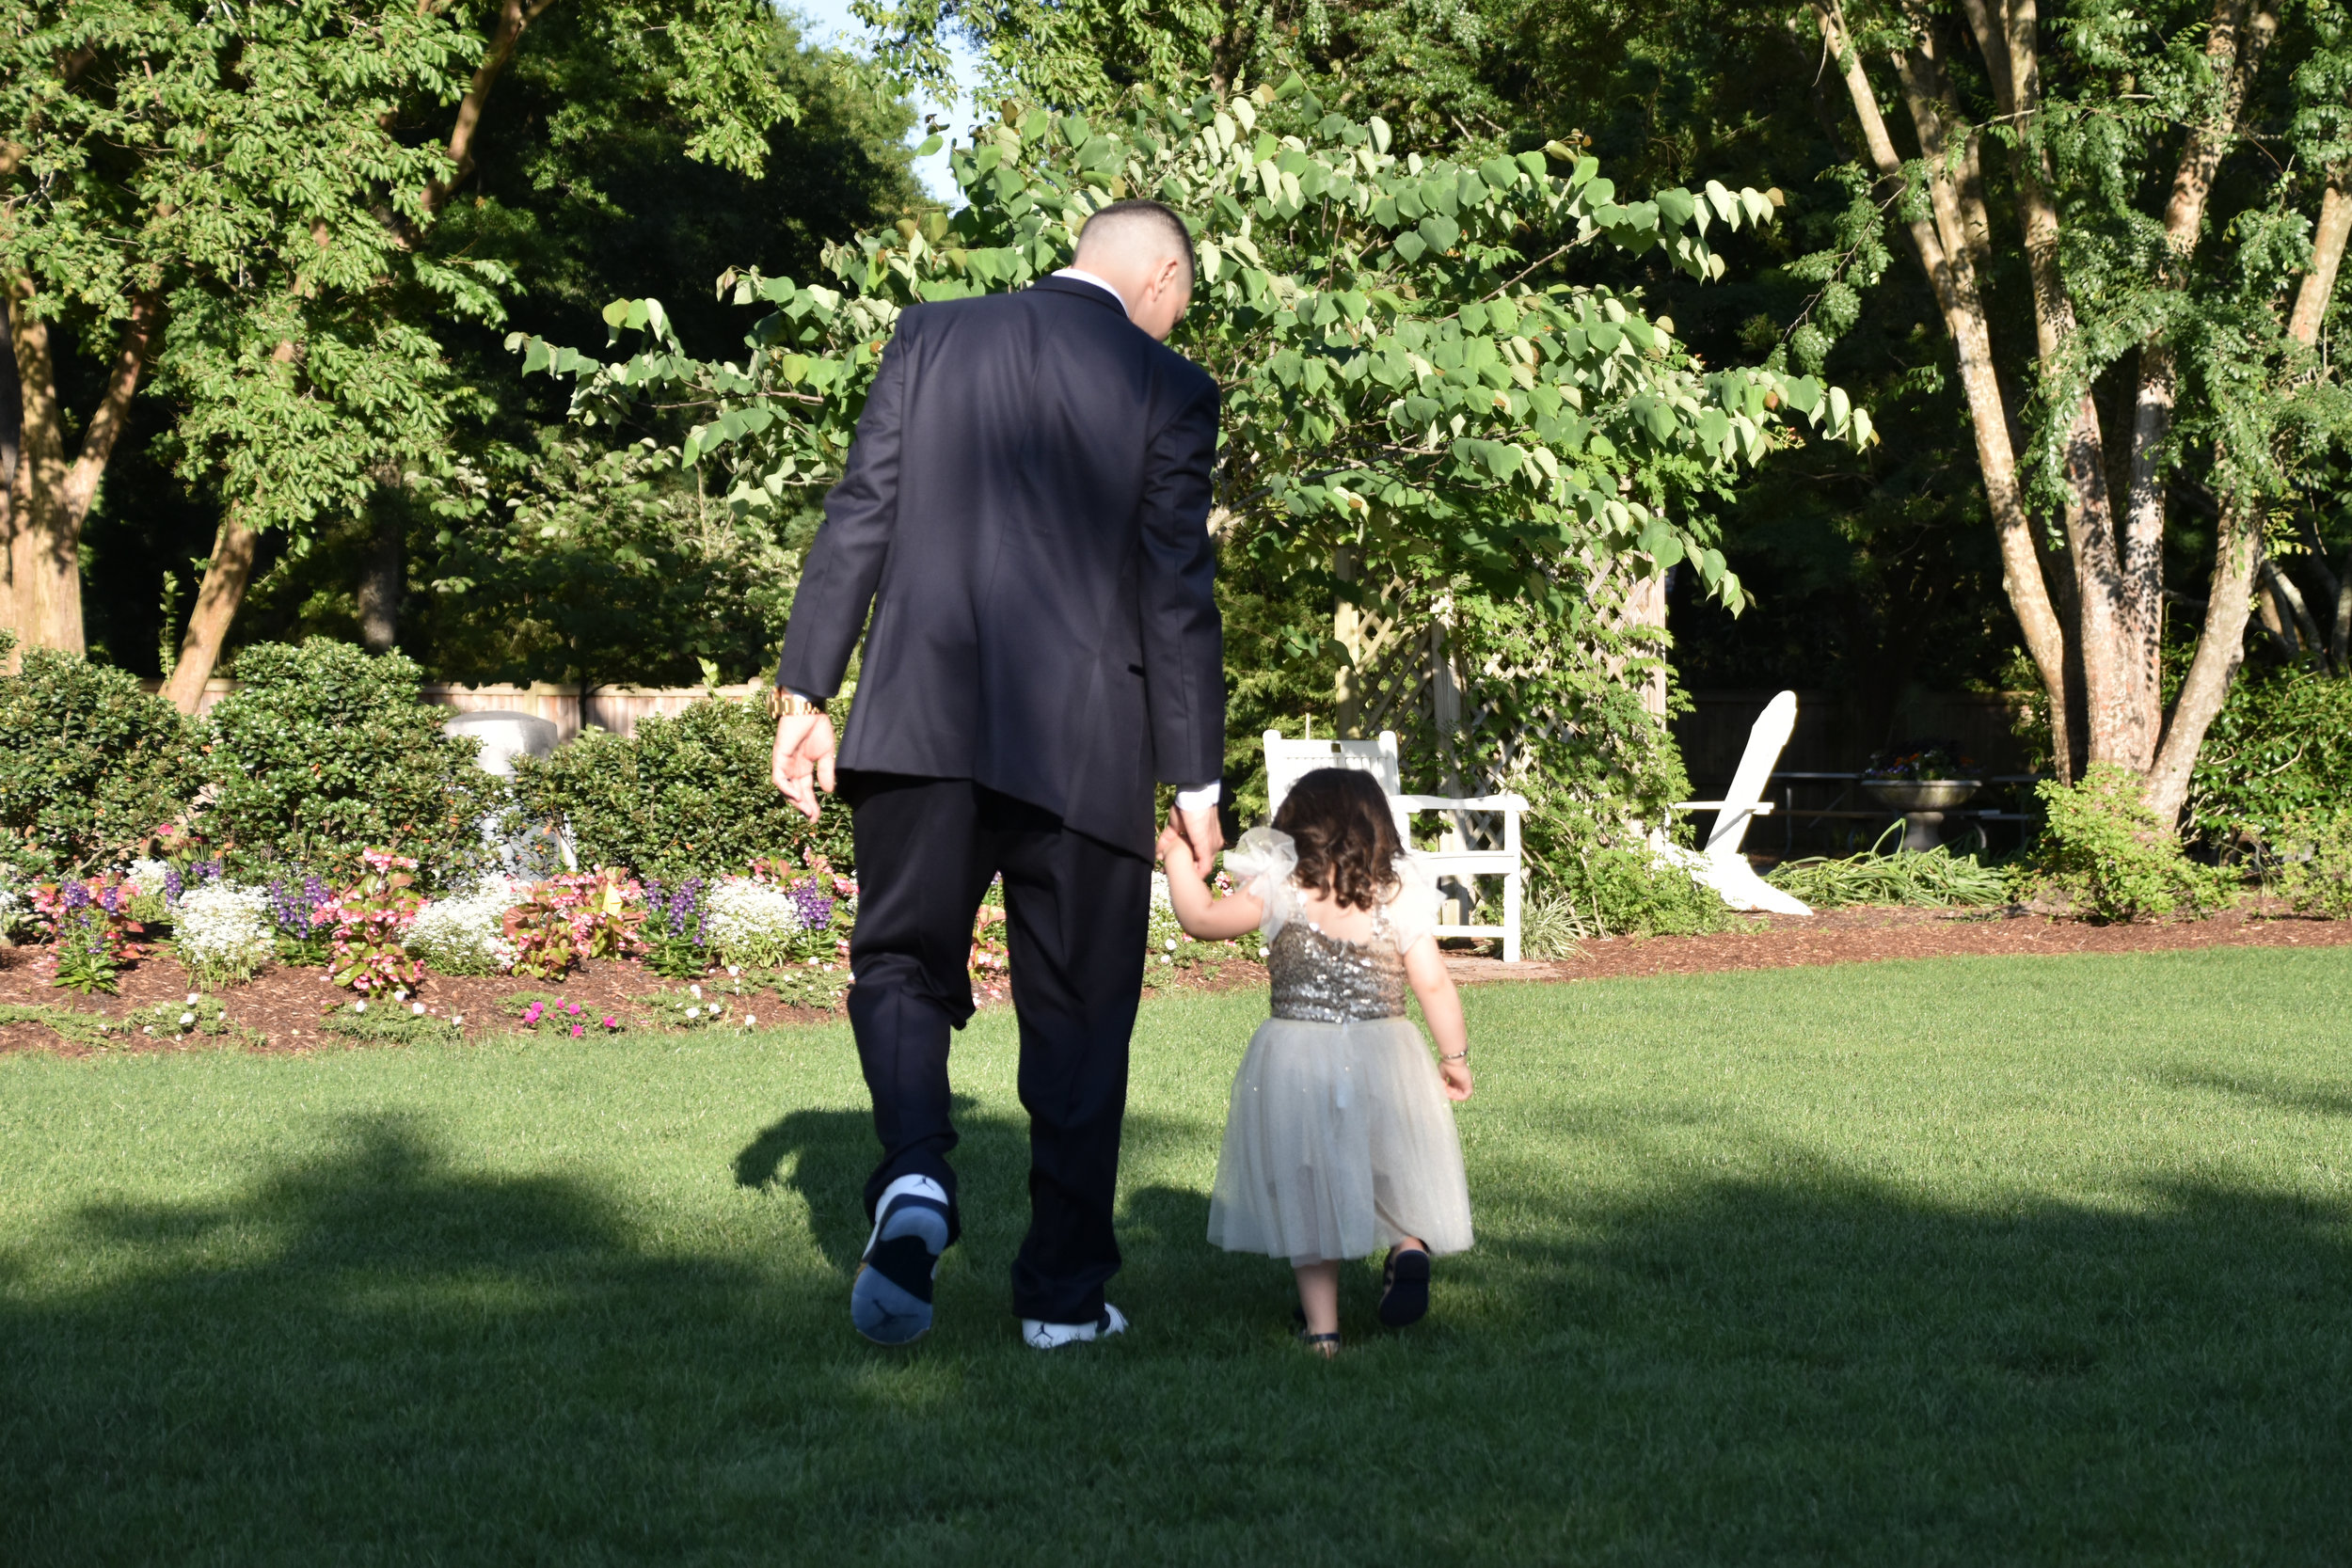 Walk. - After the wedding we went to the Arboretum to do some pictures. This is the groom walking with the flower girl. Wilmington, NC.